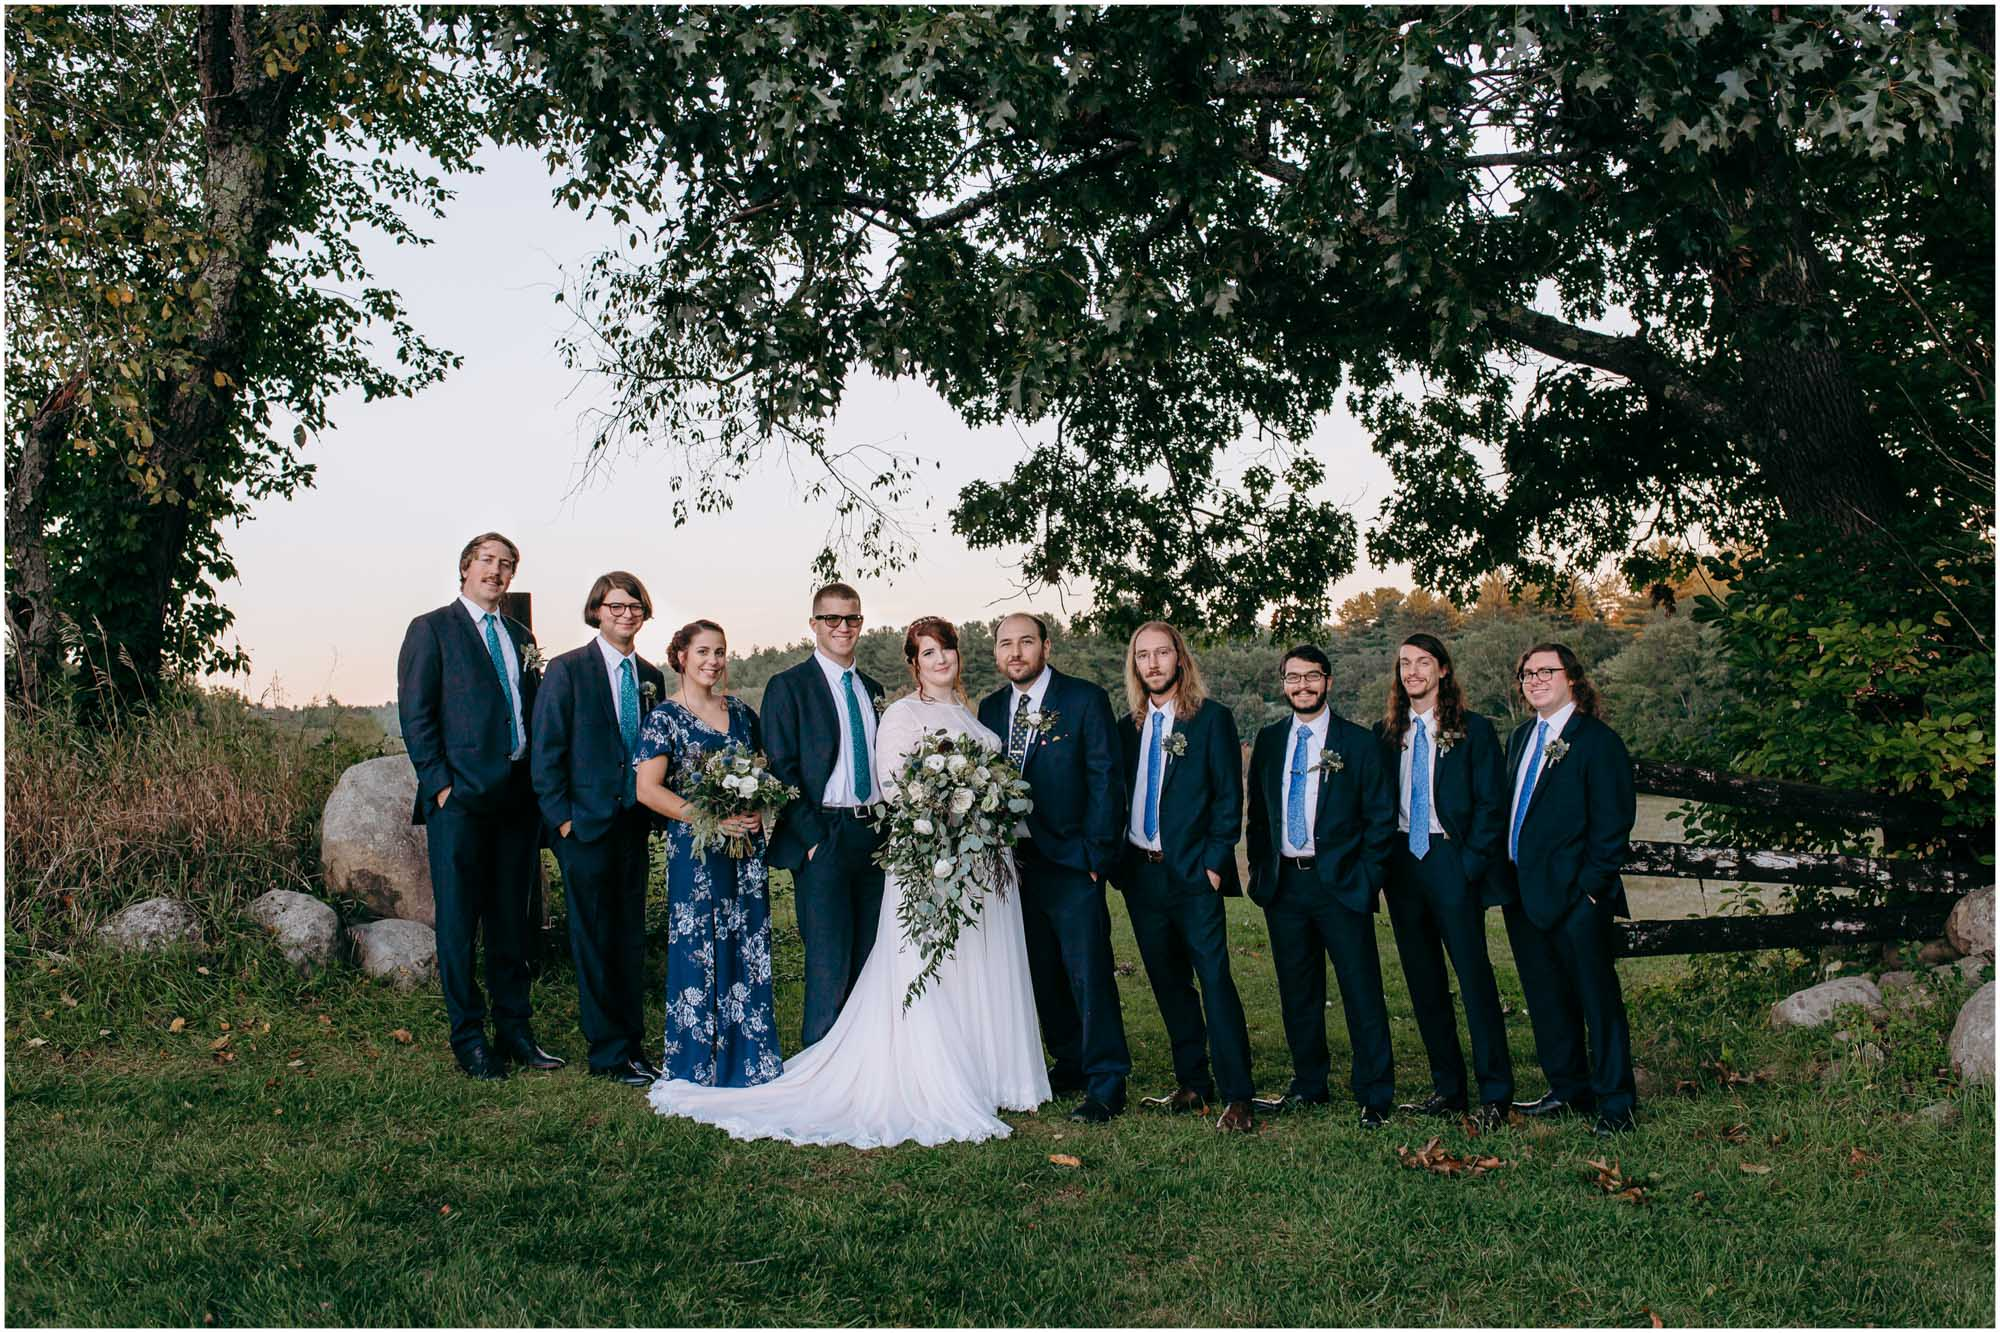 Stylish wedding party at sunset in vineyard - by Ashleigh Laureen Photography at LaBelle Winery in Amherst, New Hampshire